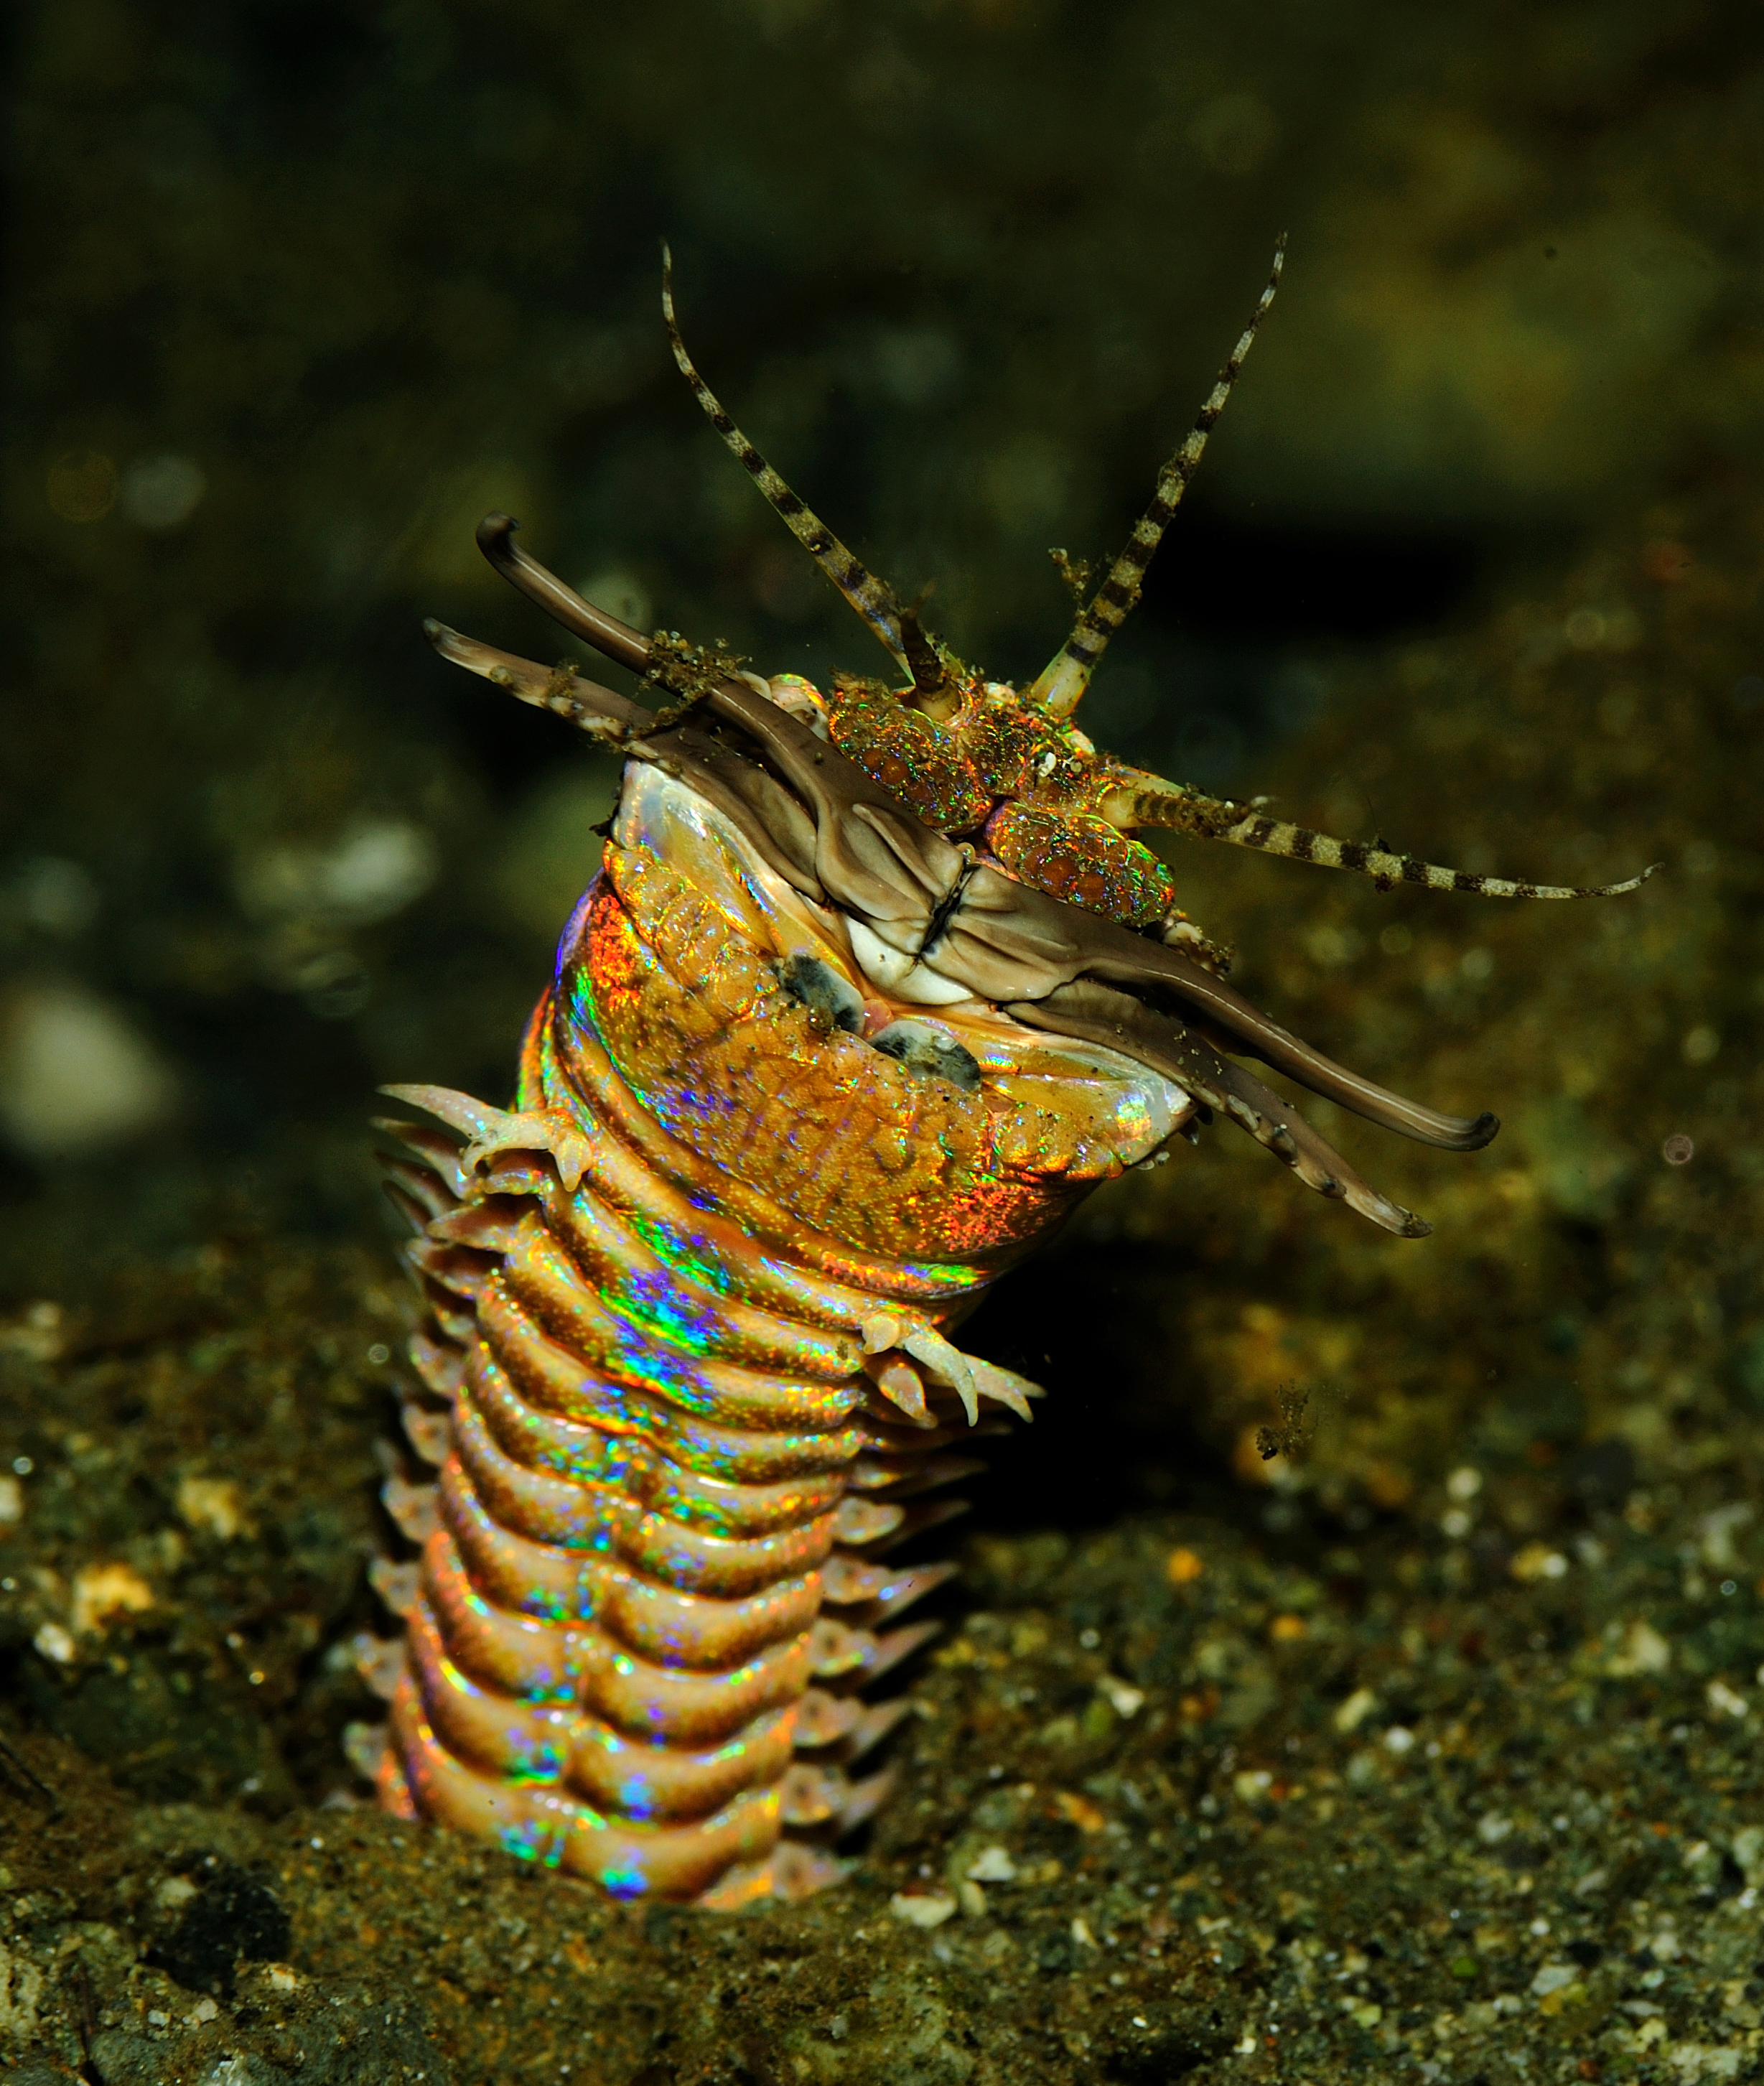 Marine worm gifs for Where can i buy worms for fishing near me